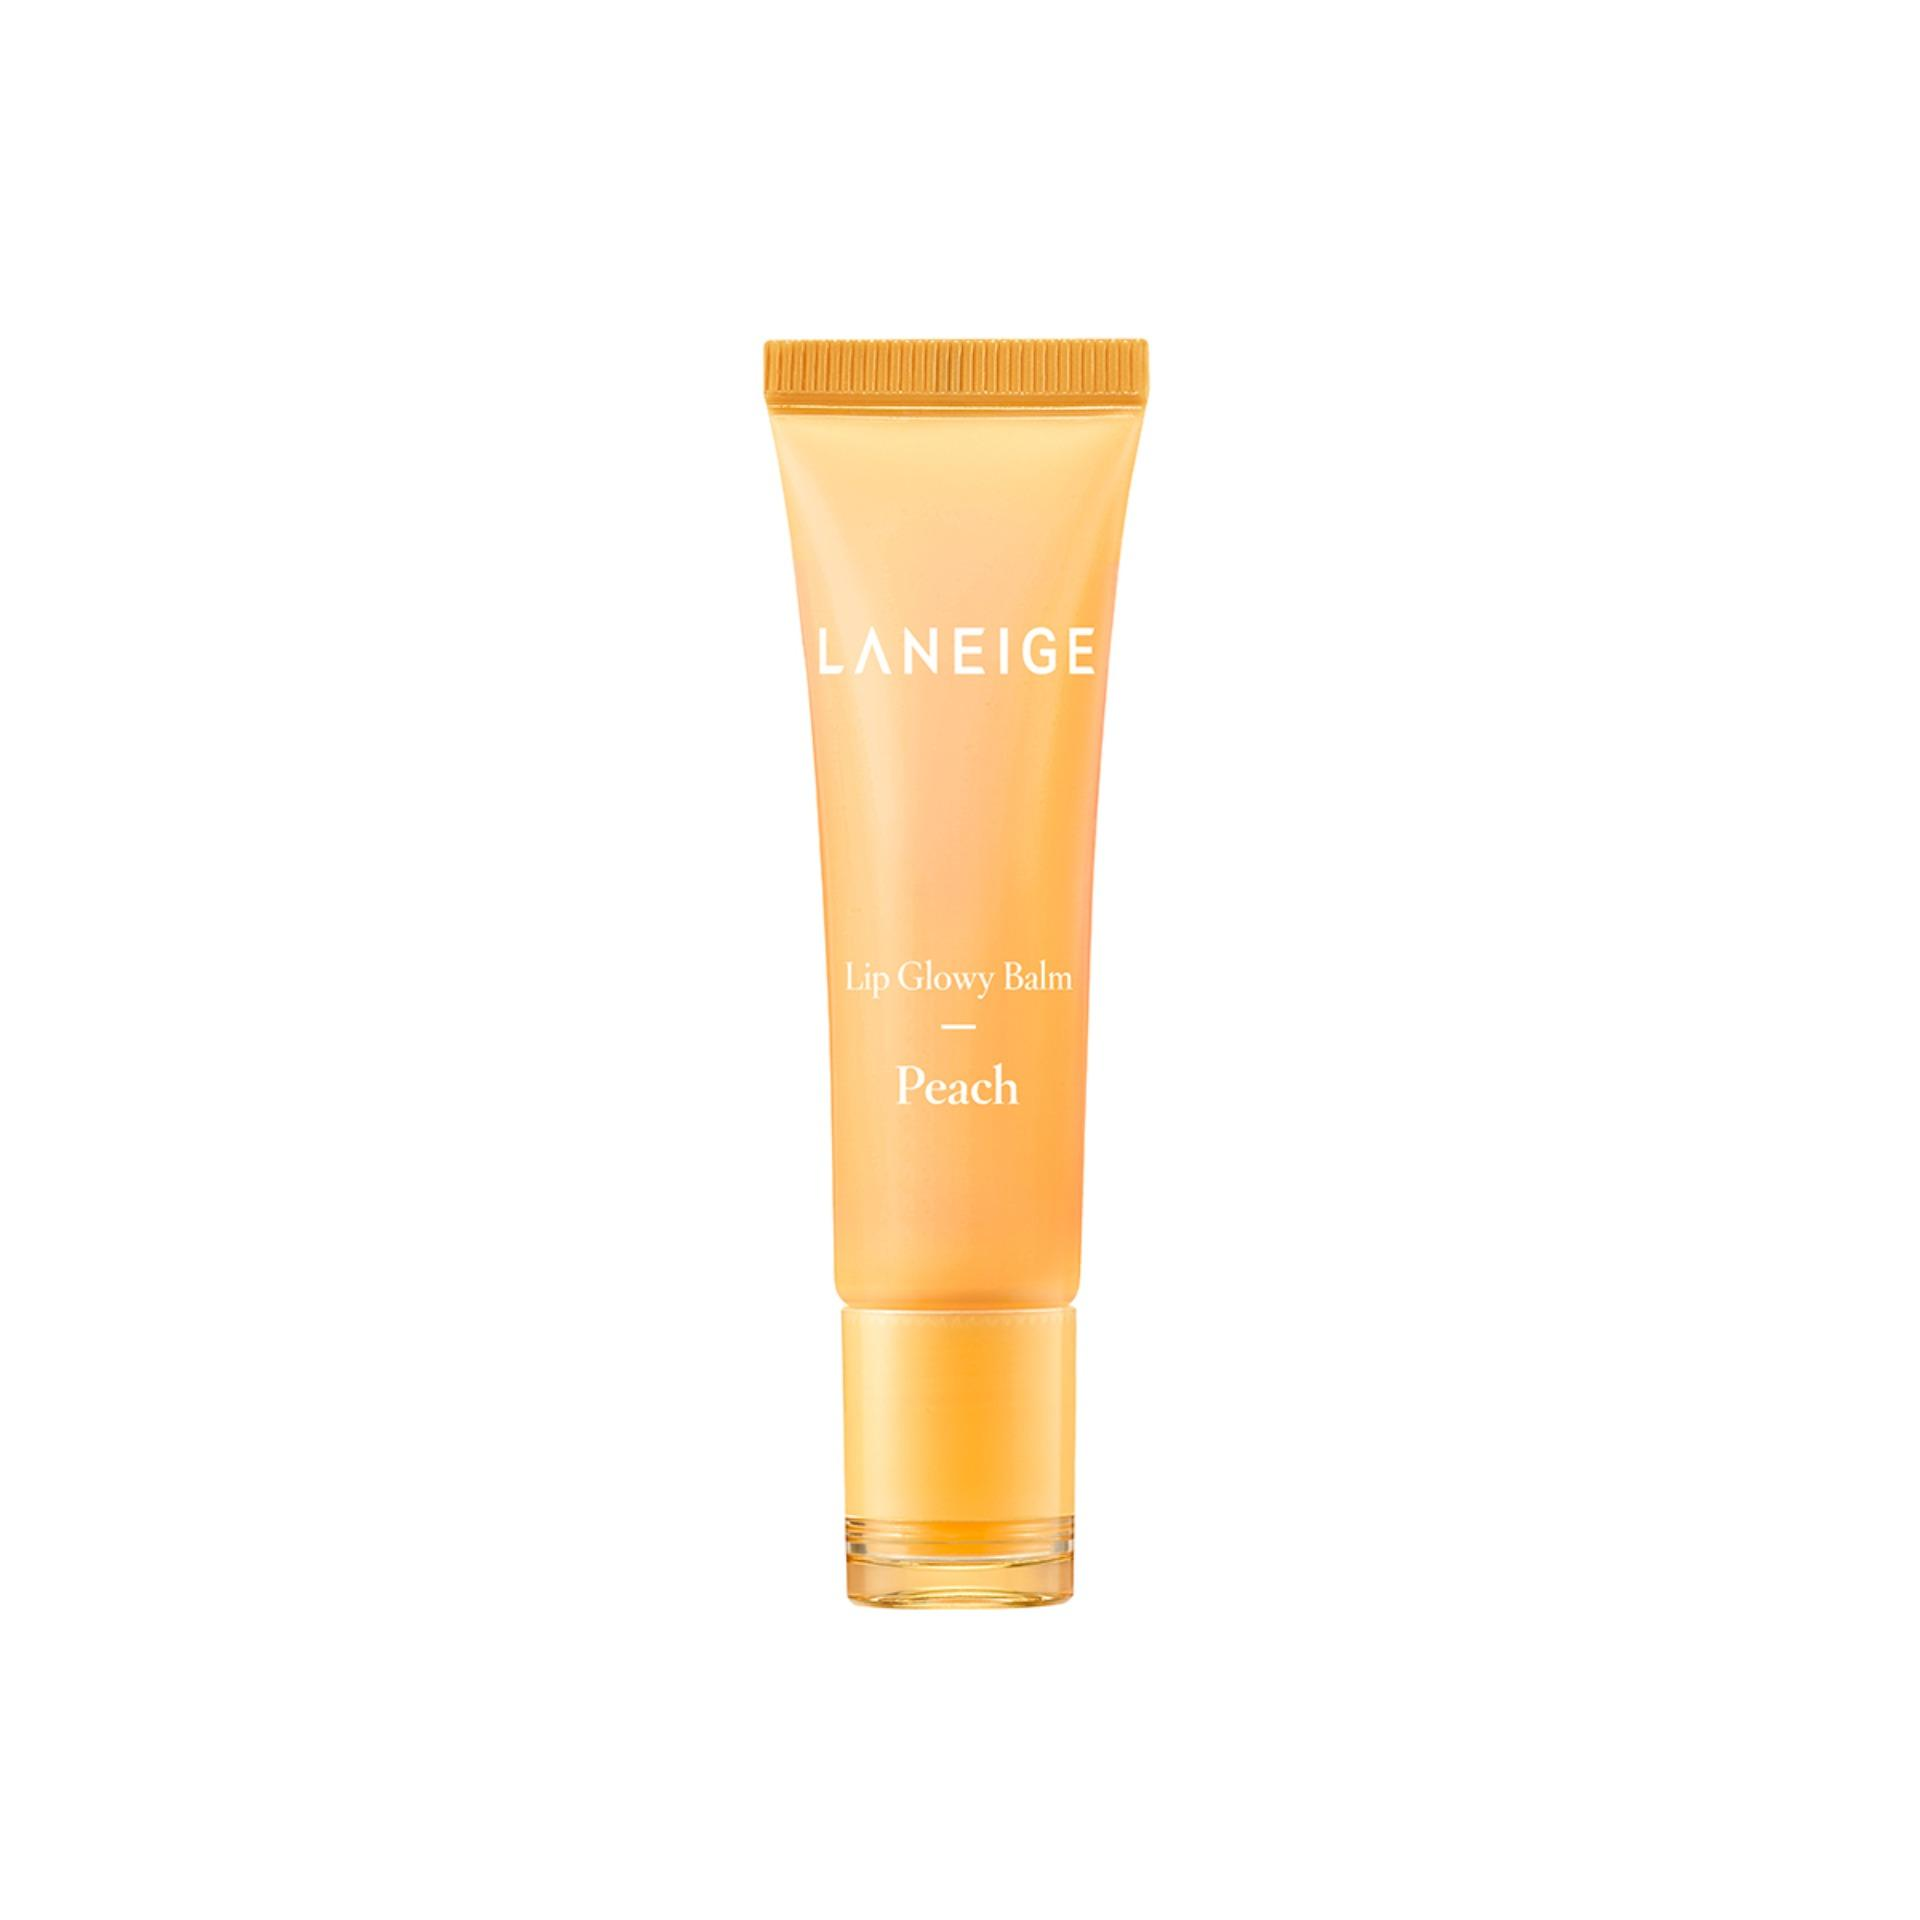 Laneige Lip Glowy Balm 10G Select From 4 Options For Sale